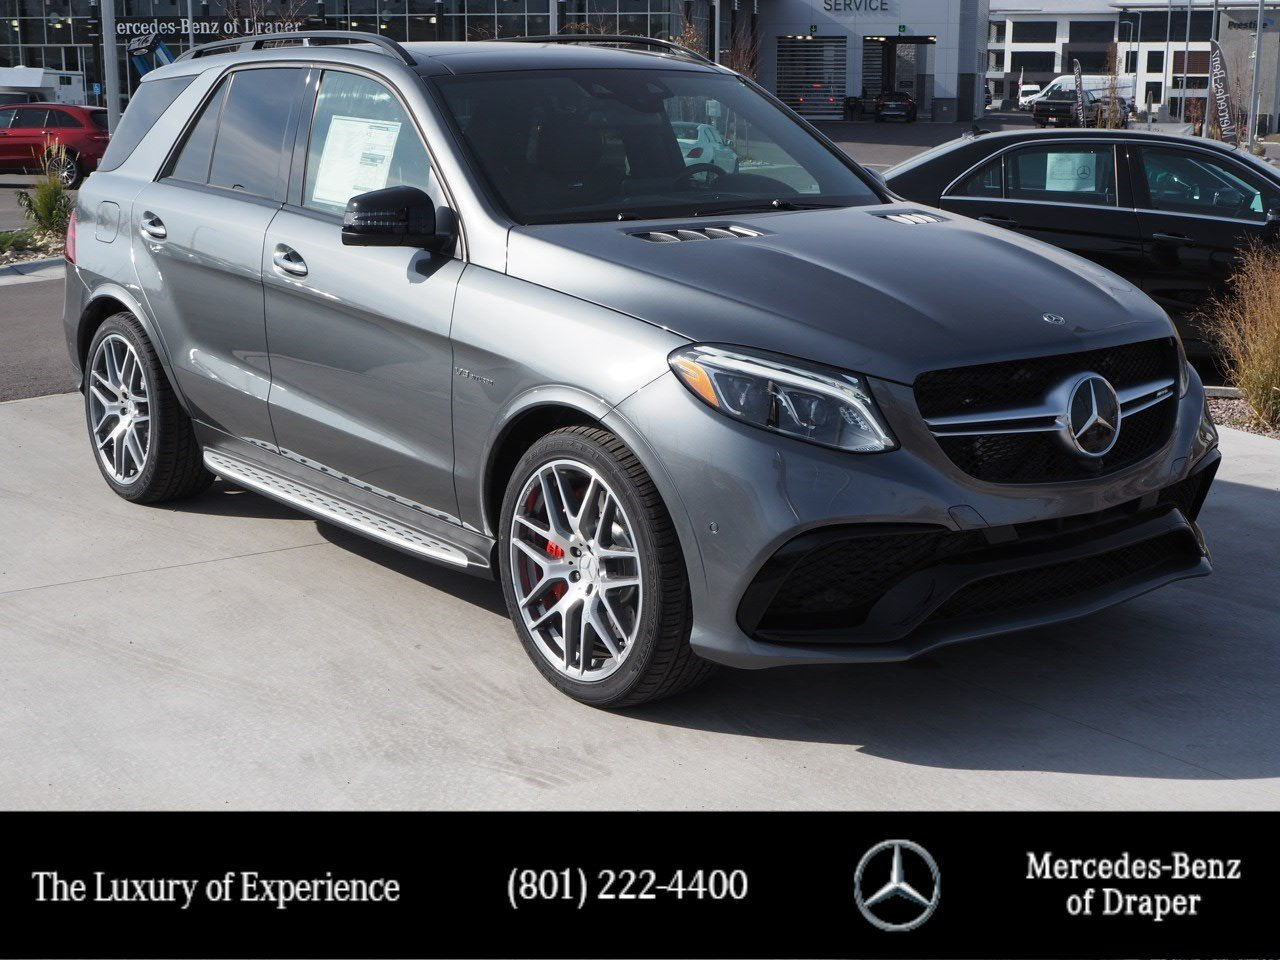 New 2018 Mercedes Benz Gle Amg 63 S 4matic Suv In Draper Jb171060 C230 Panel Speaker On Wiring Harness For Trailer Hitch